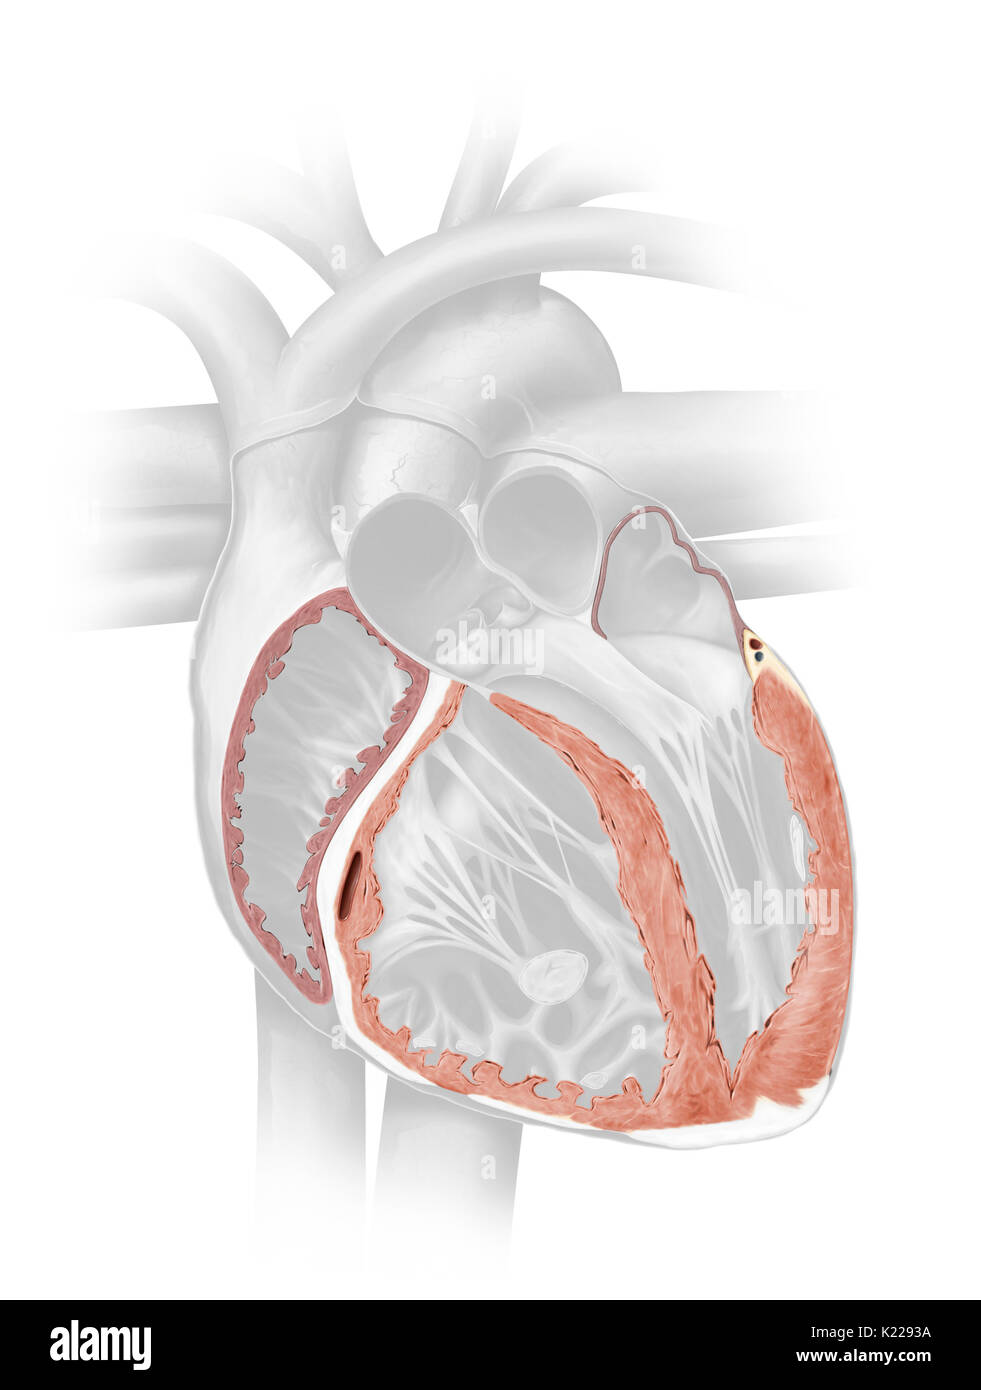 The myocardium consists of muscular fibers that form the thickest layer of the cardiac wall. - Stock Image